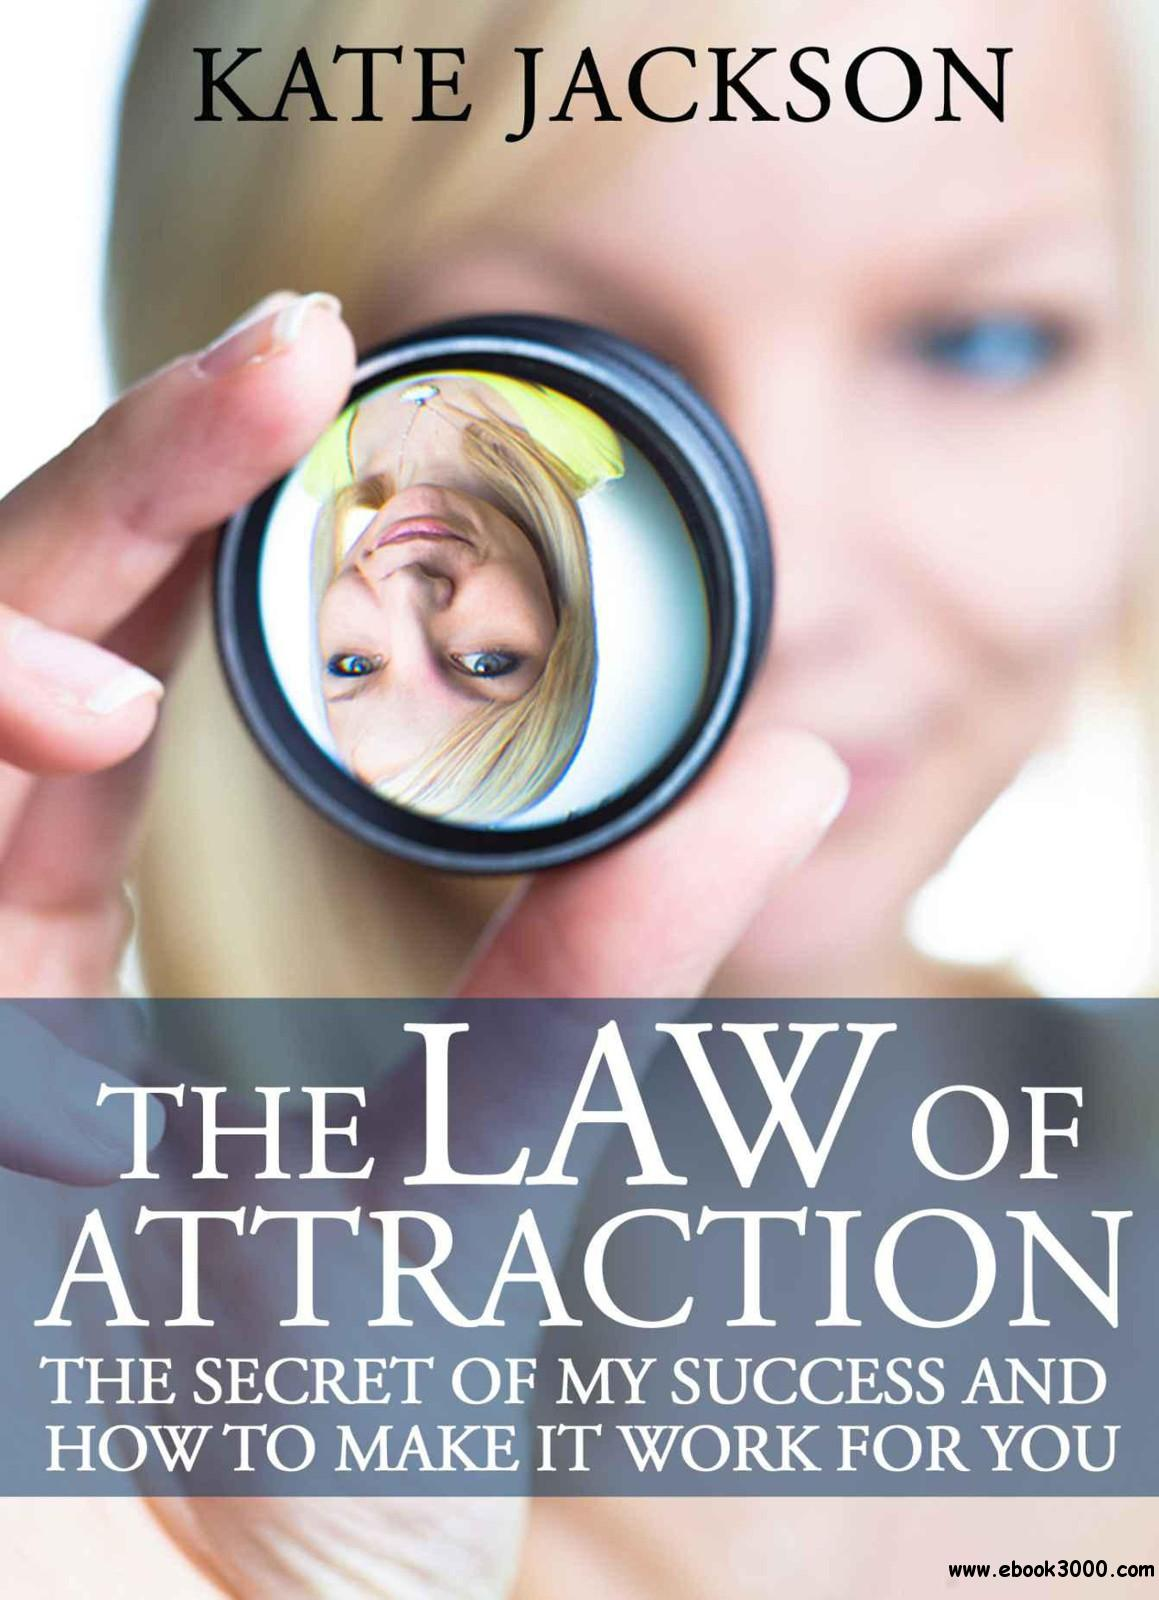 The Law of Attraction: The Secret of My Success and How to Make It Work for You free download